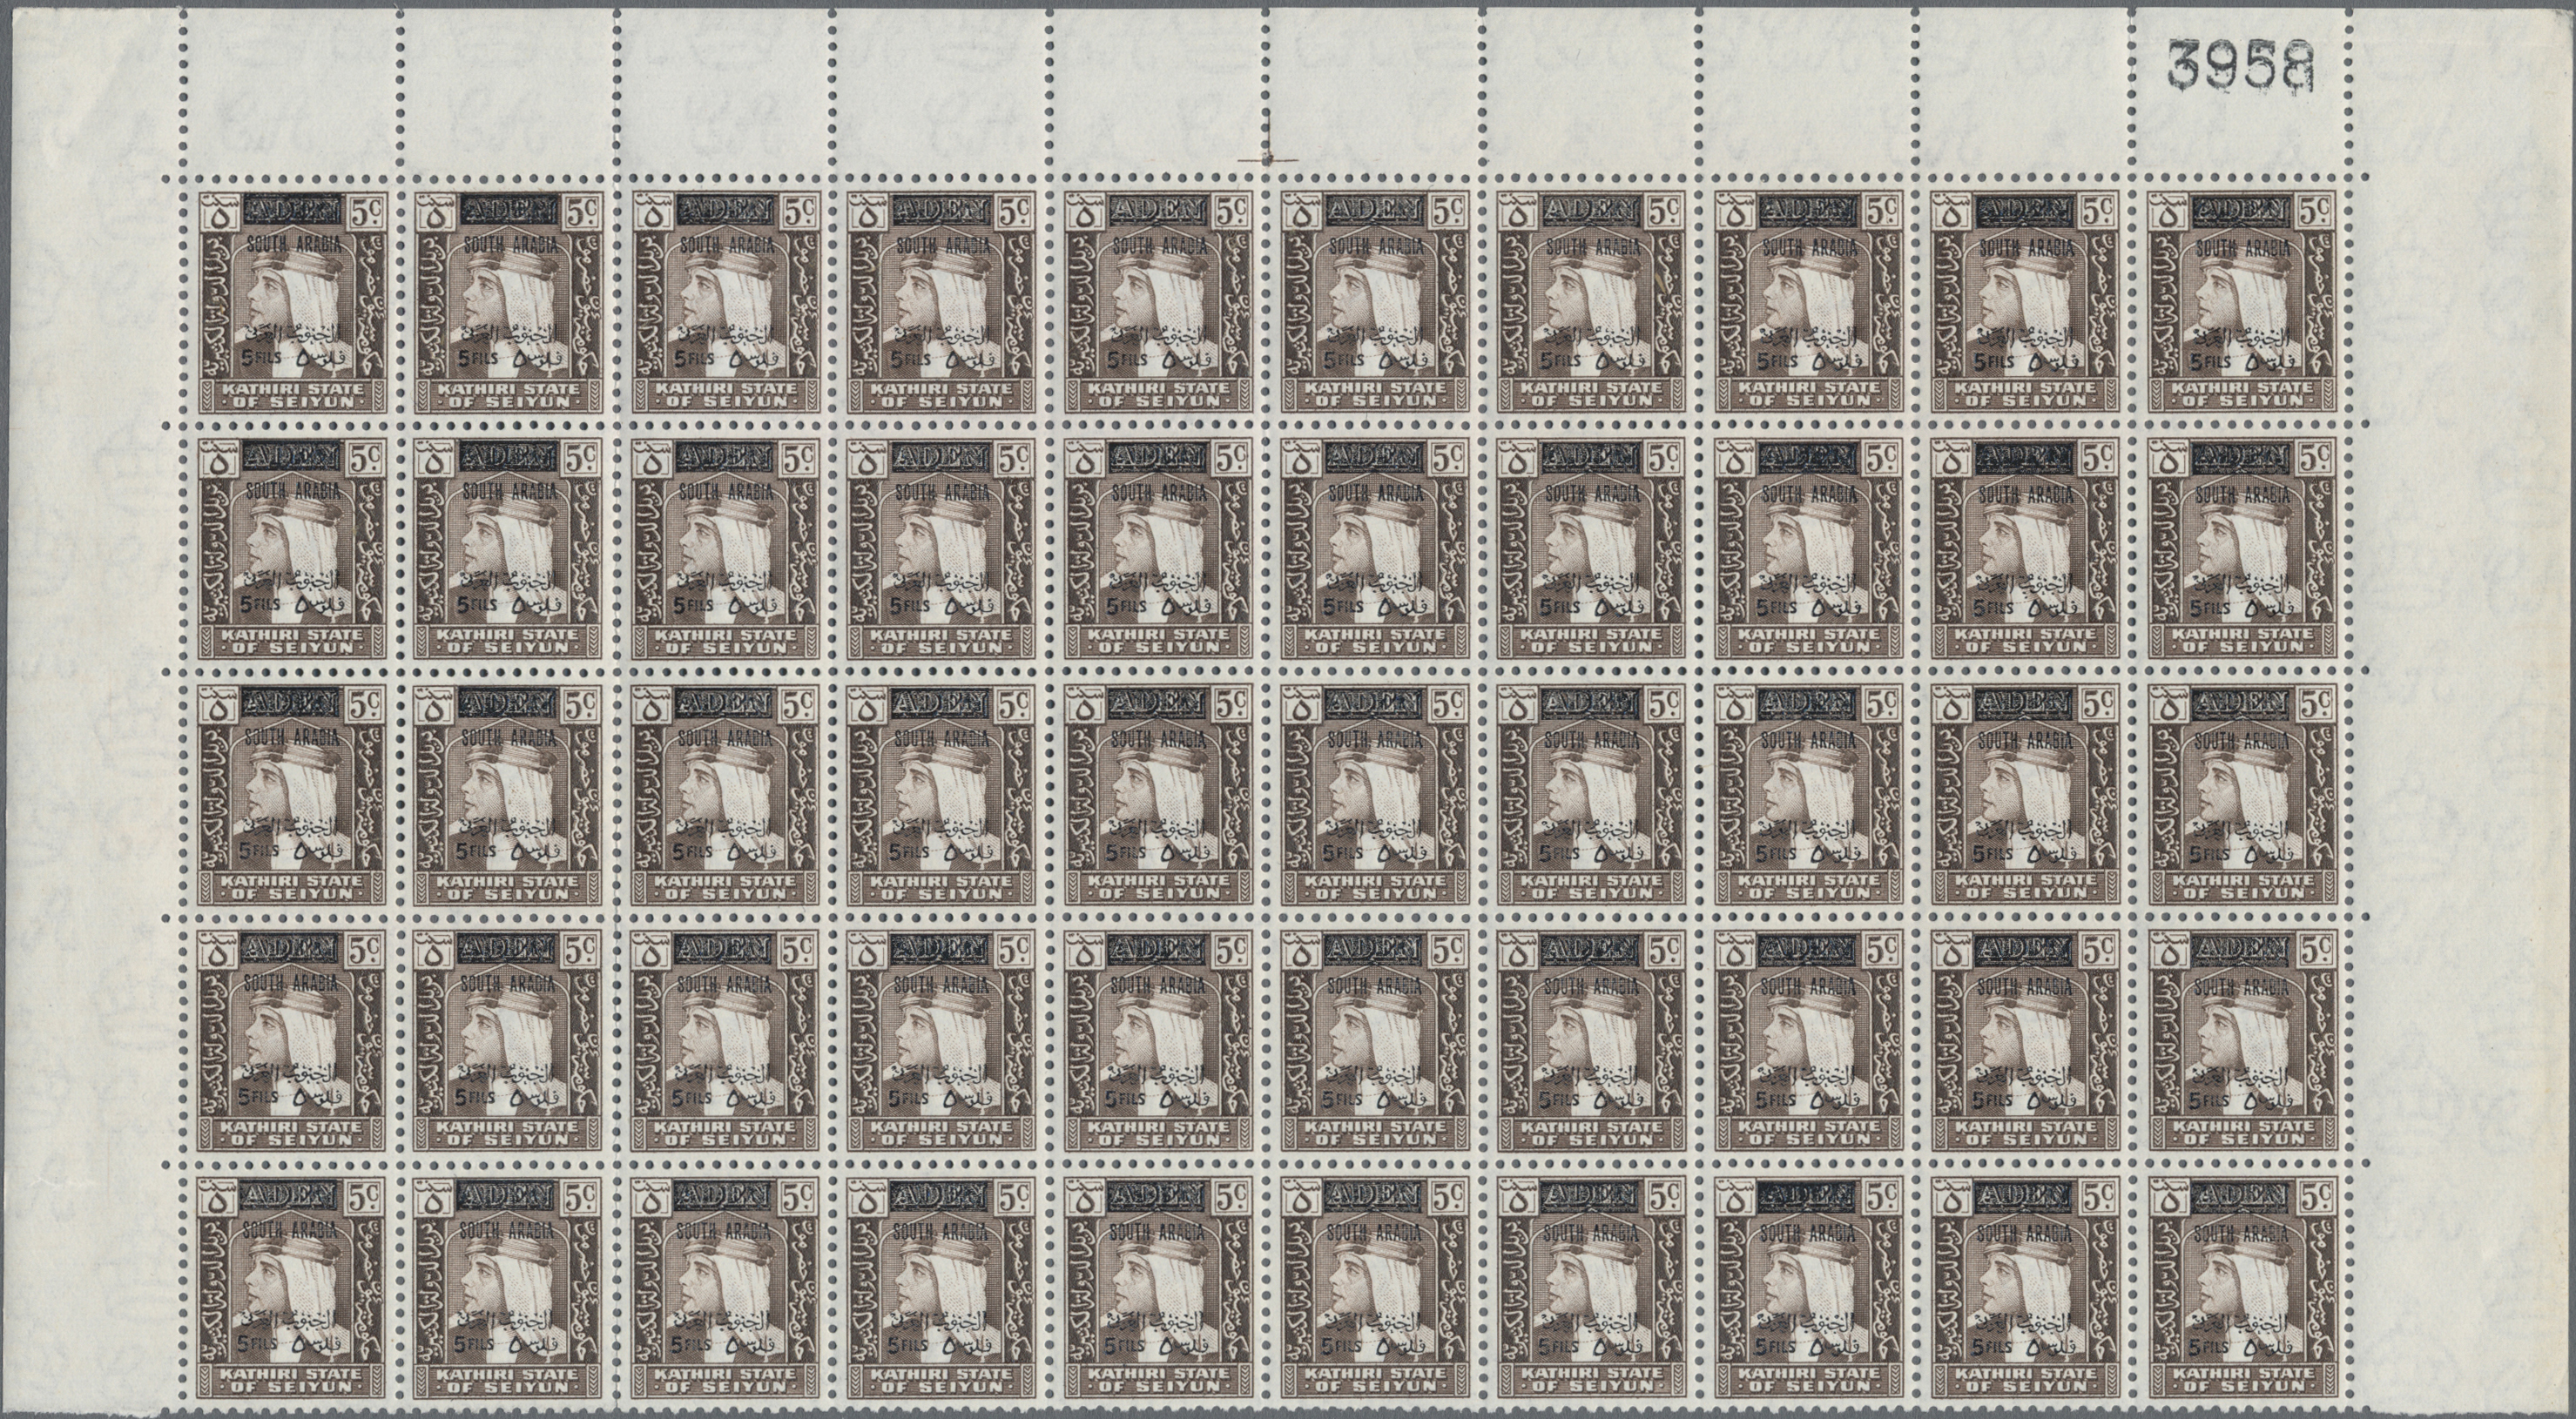 Lot 05004 - Aden - Kathiri State of Seiyun  -  Auktionshaus Christoph Gärtner GmbH & Co. KG Sale #49 Single lots Asia, Thematics, Oversea, Europe, Old German States, Third Reich, German Colonies and the Federal Republic of Germany